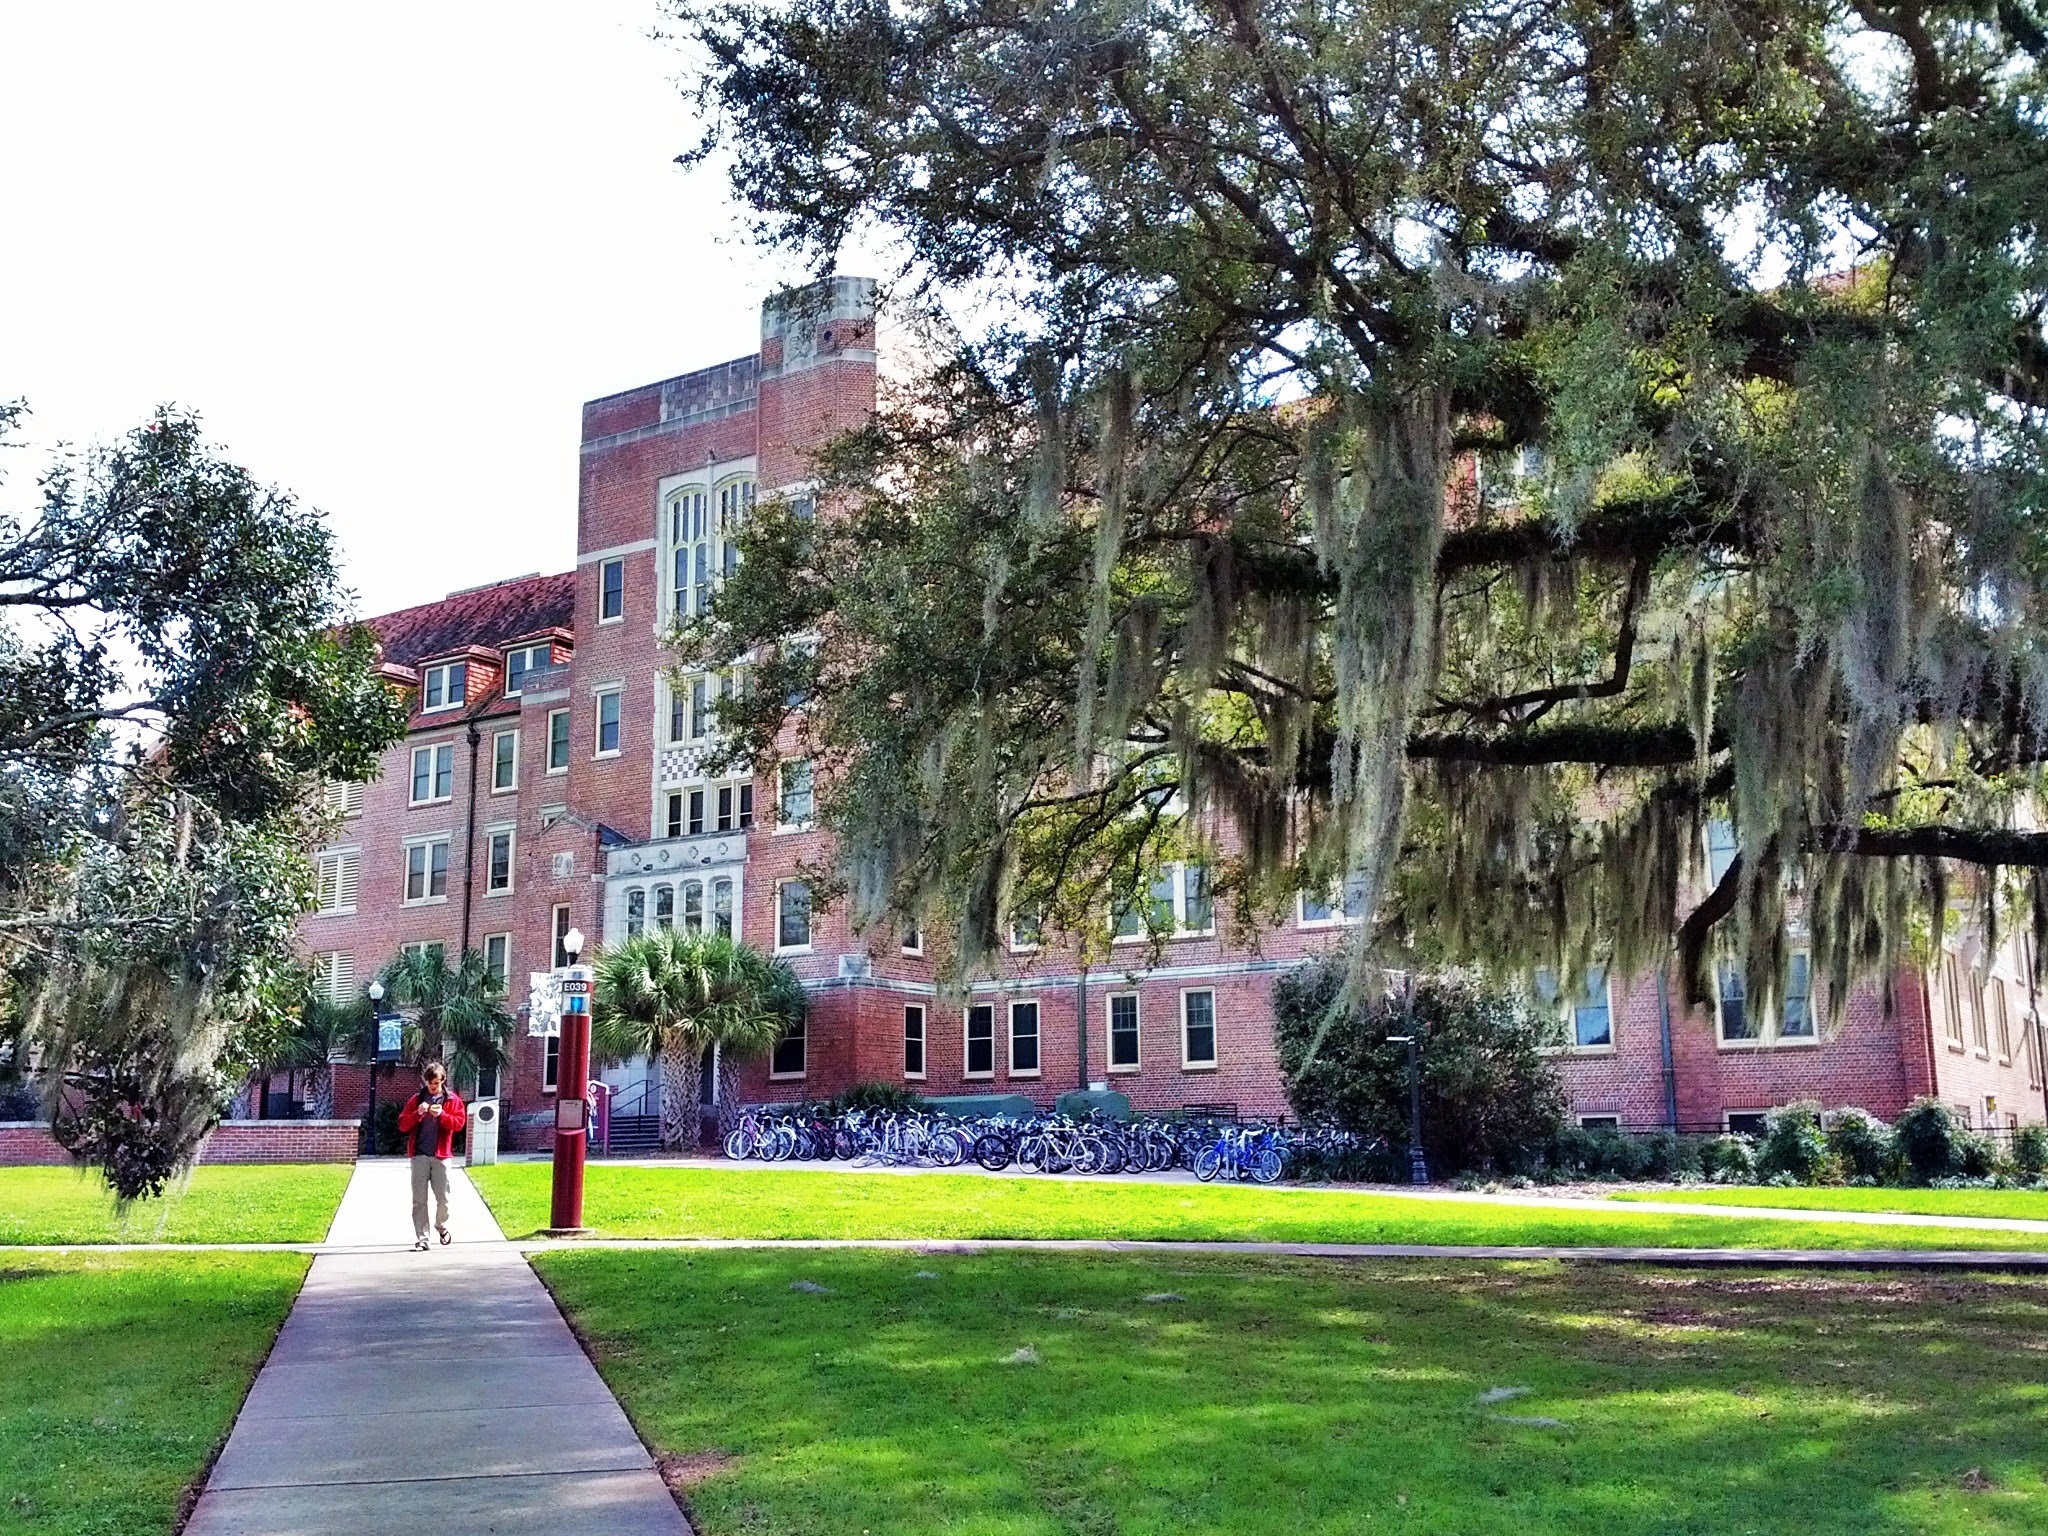 Florida State University Campus Tallahassee Florida Visions Of